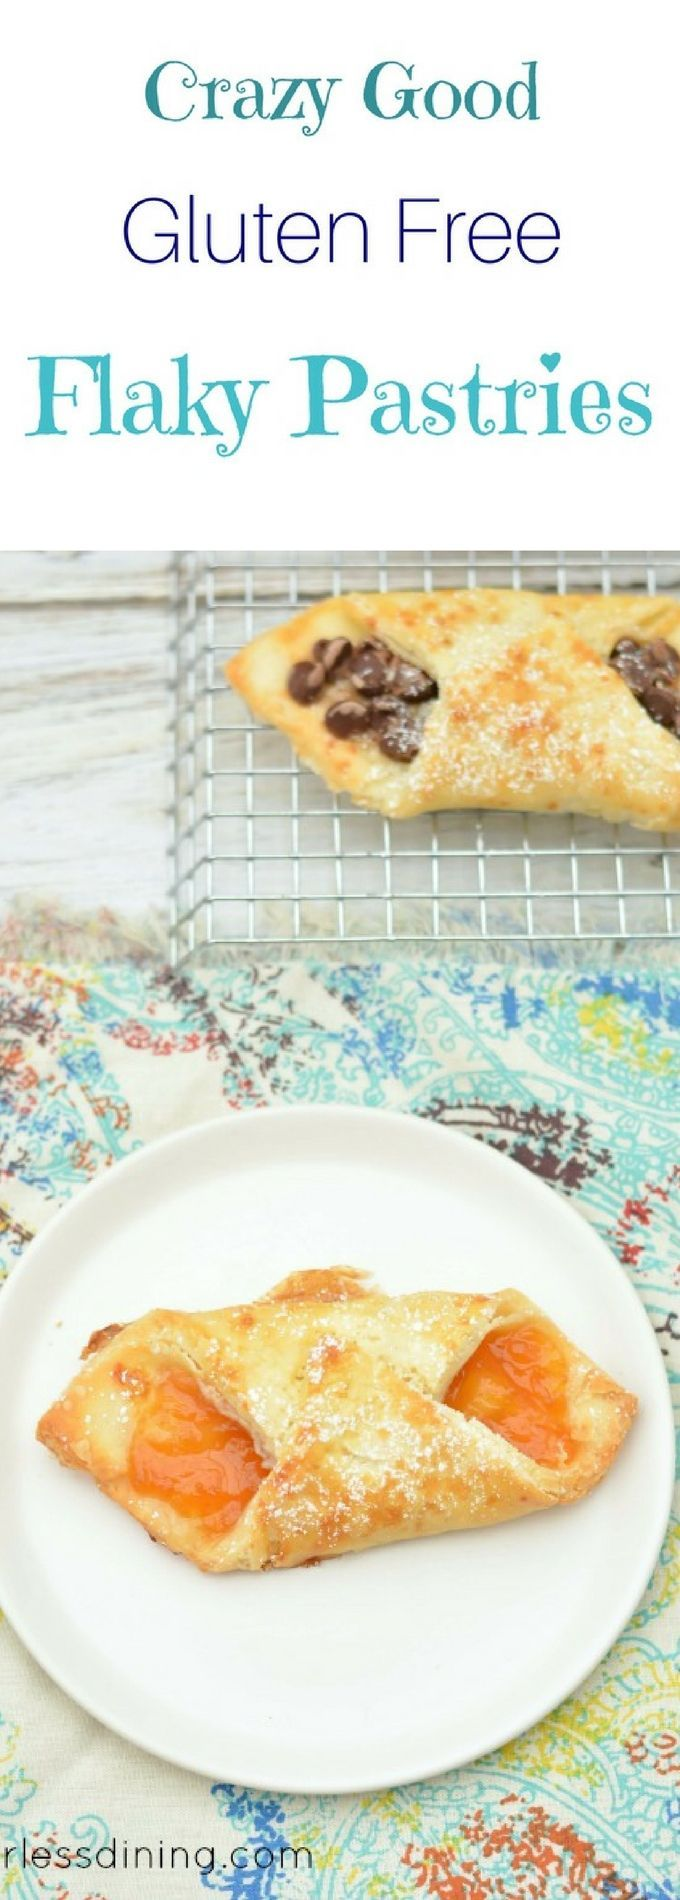 You can have pastries when you are gluten free! These gluten free flaky pastries are a delicious pastry that you can fill with jam, chocolate, or fruit. Recipe at http://www.fearlessdining.com